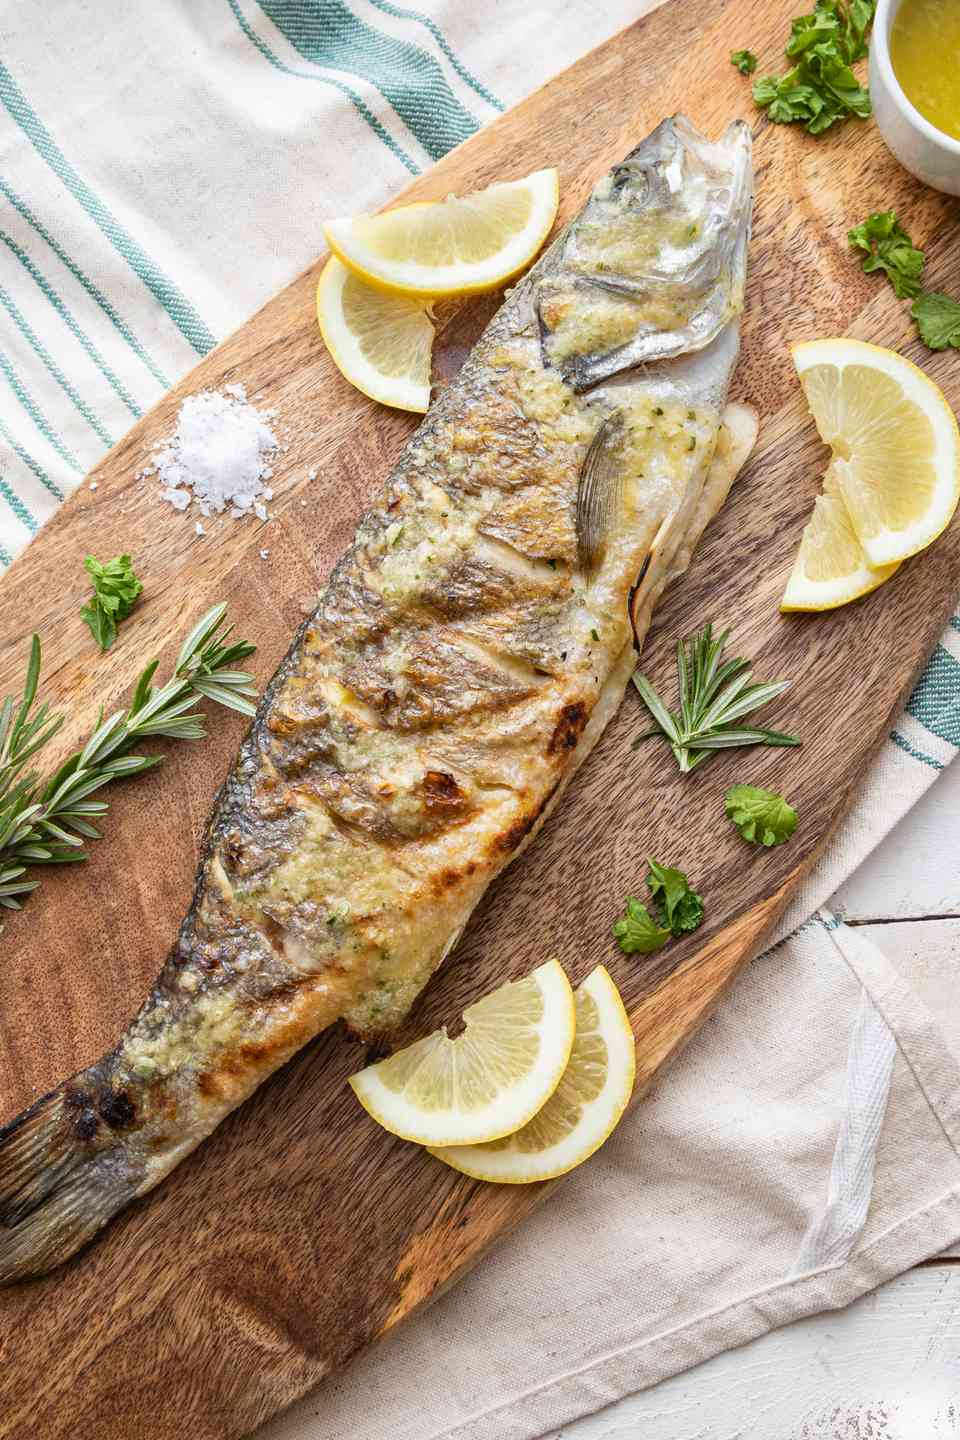 Overhead view of a whole branzino on a platter with lemon wedges and herbs.